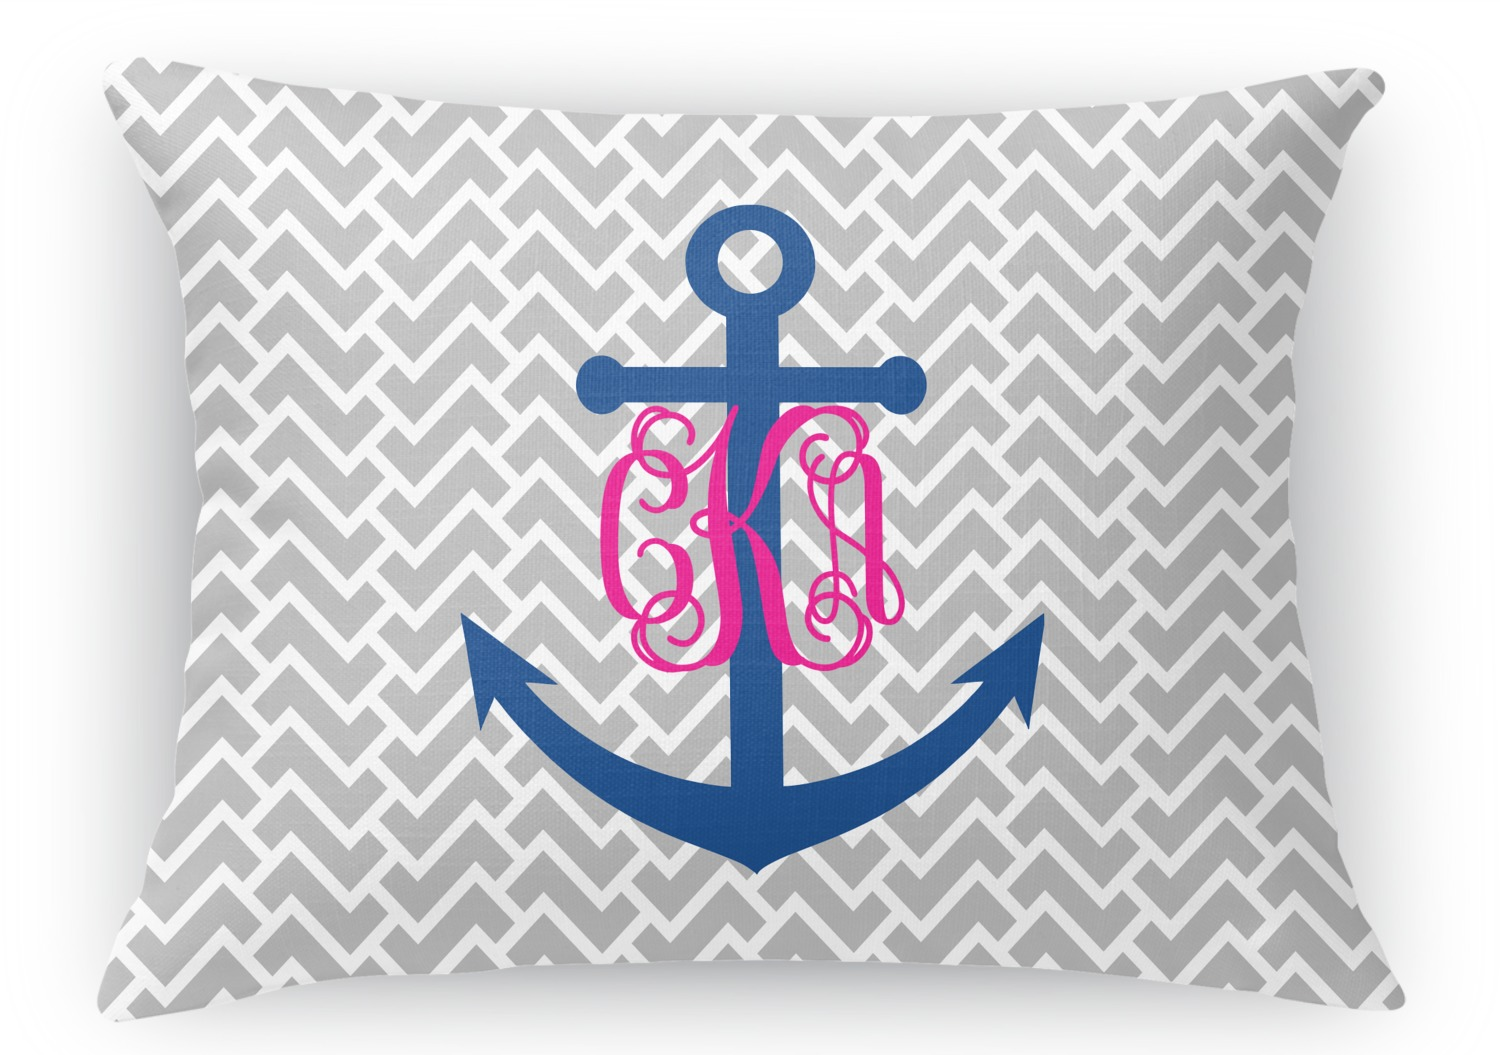 How To Make A Monogram Throw Pillow : Monogram Anchor Rectangular Throw Pillow (Personalized) - YouCustomizeIt